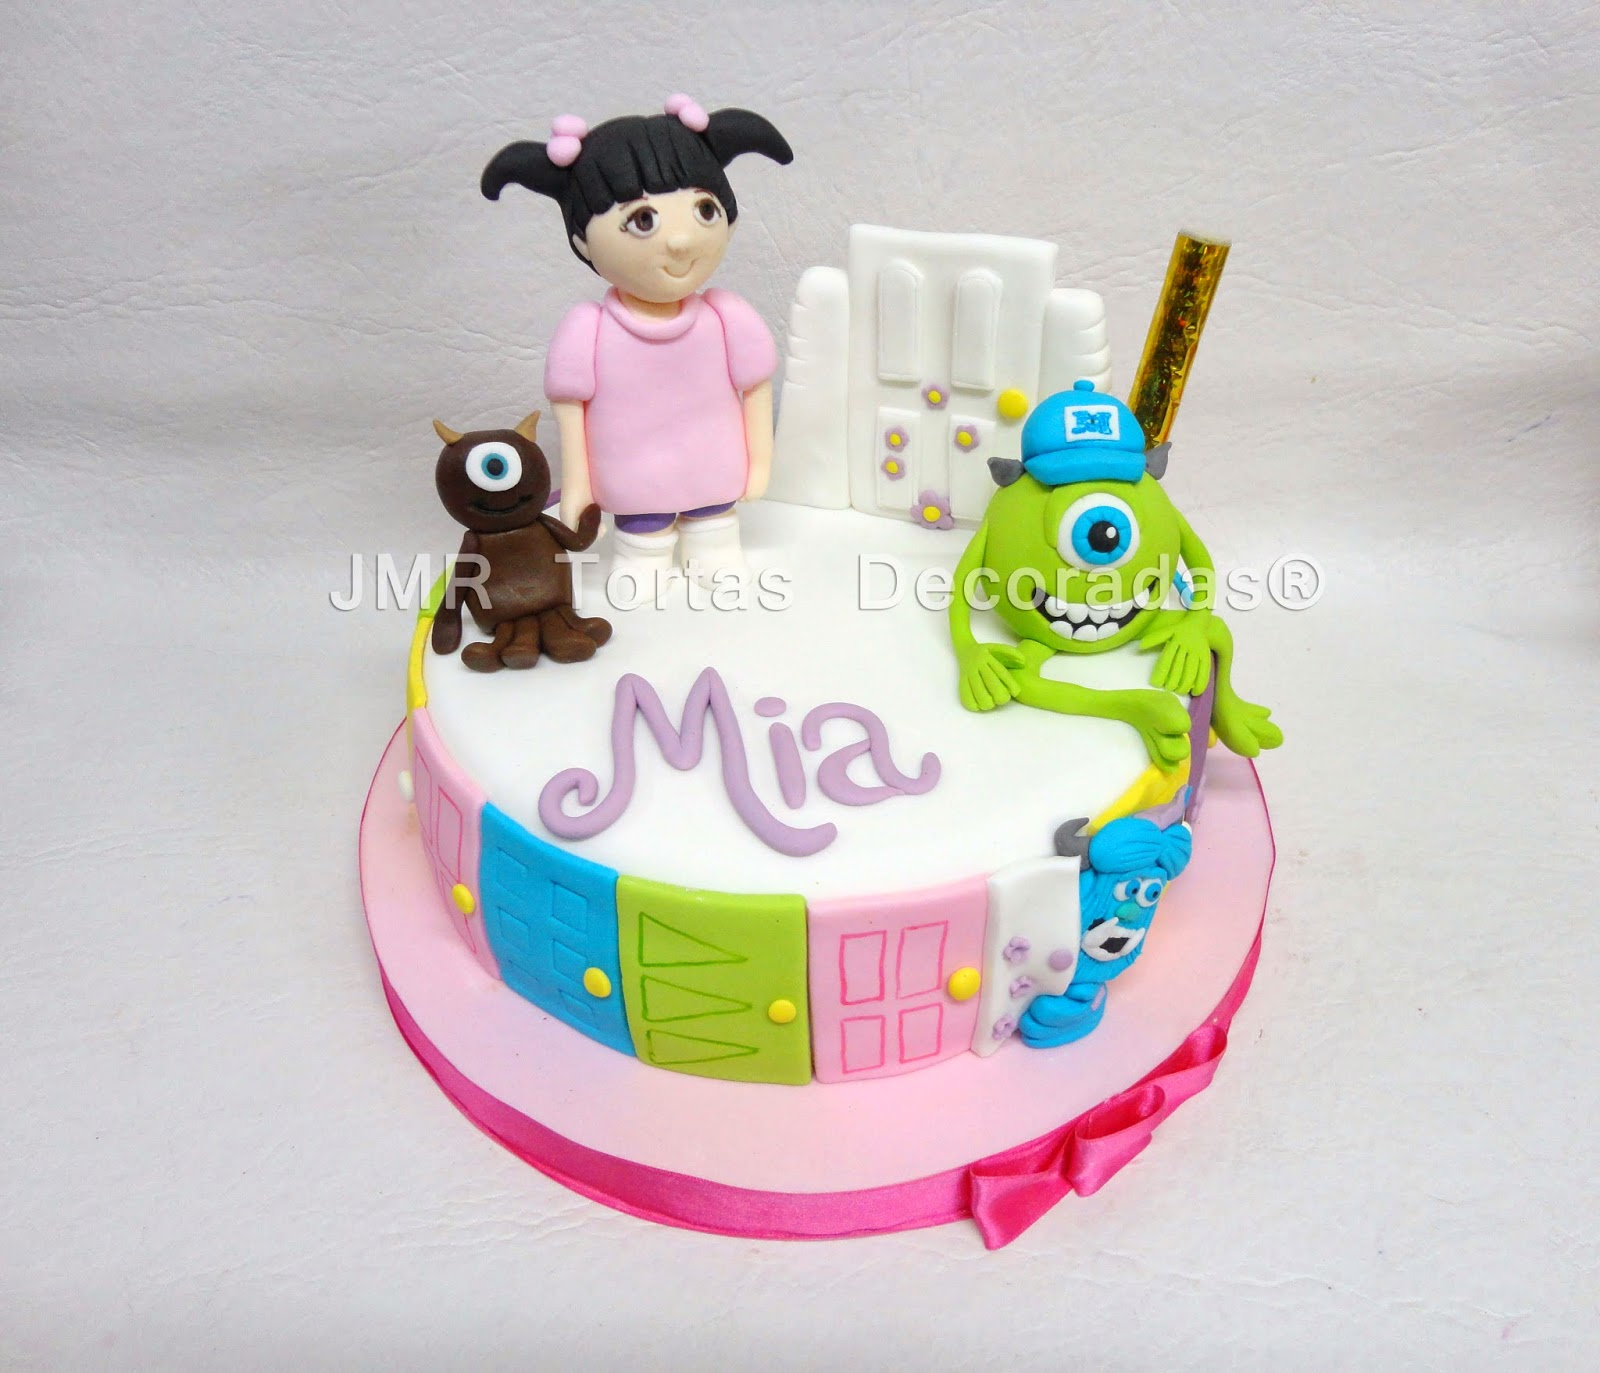 Monsters Inc | JMR Tortas Decoradas